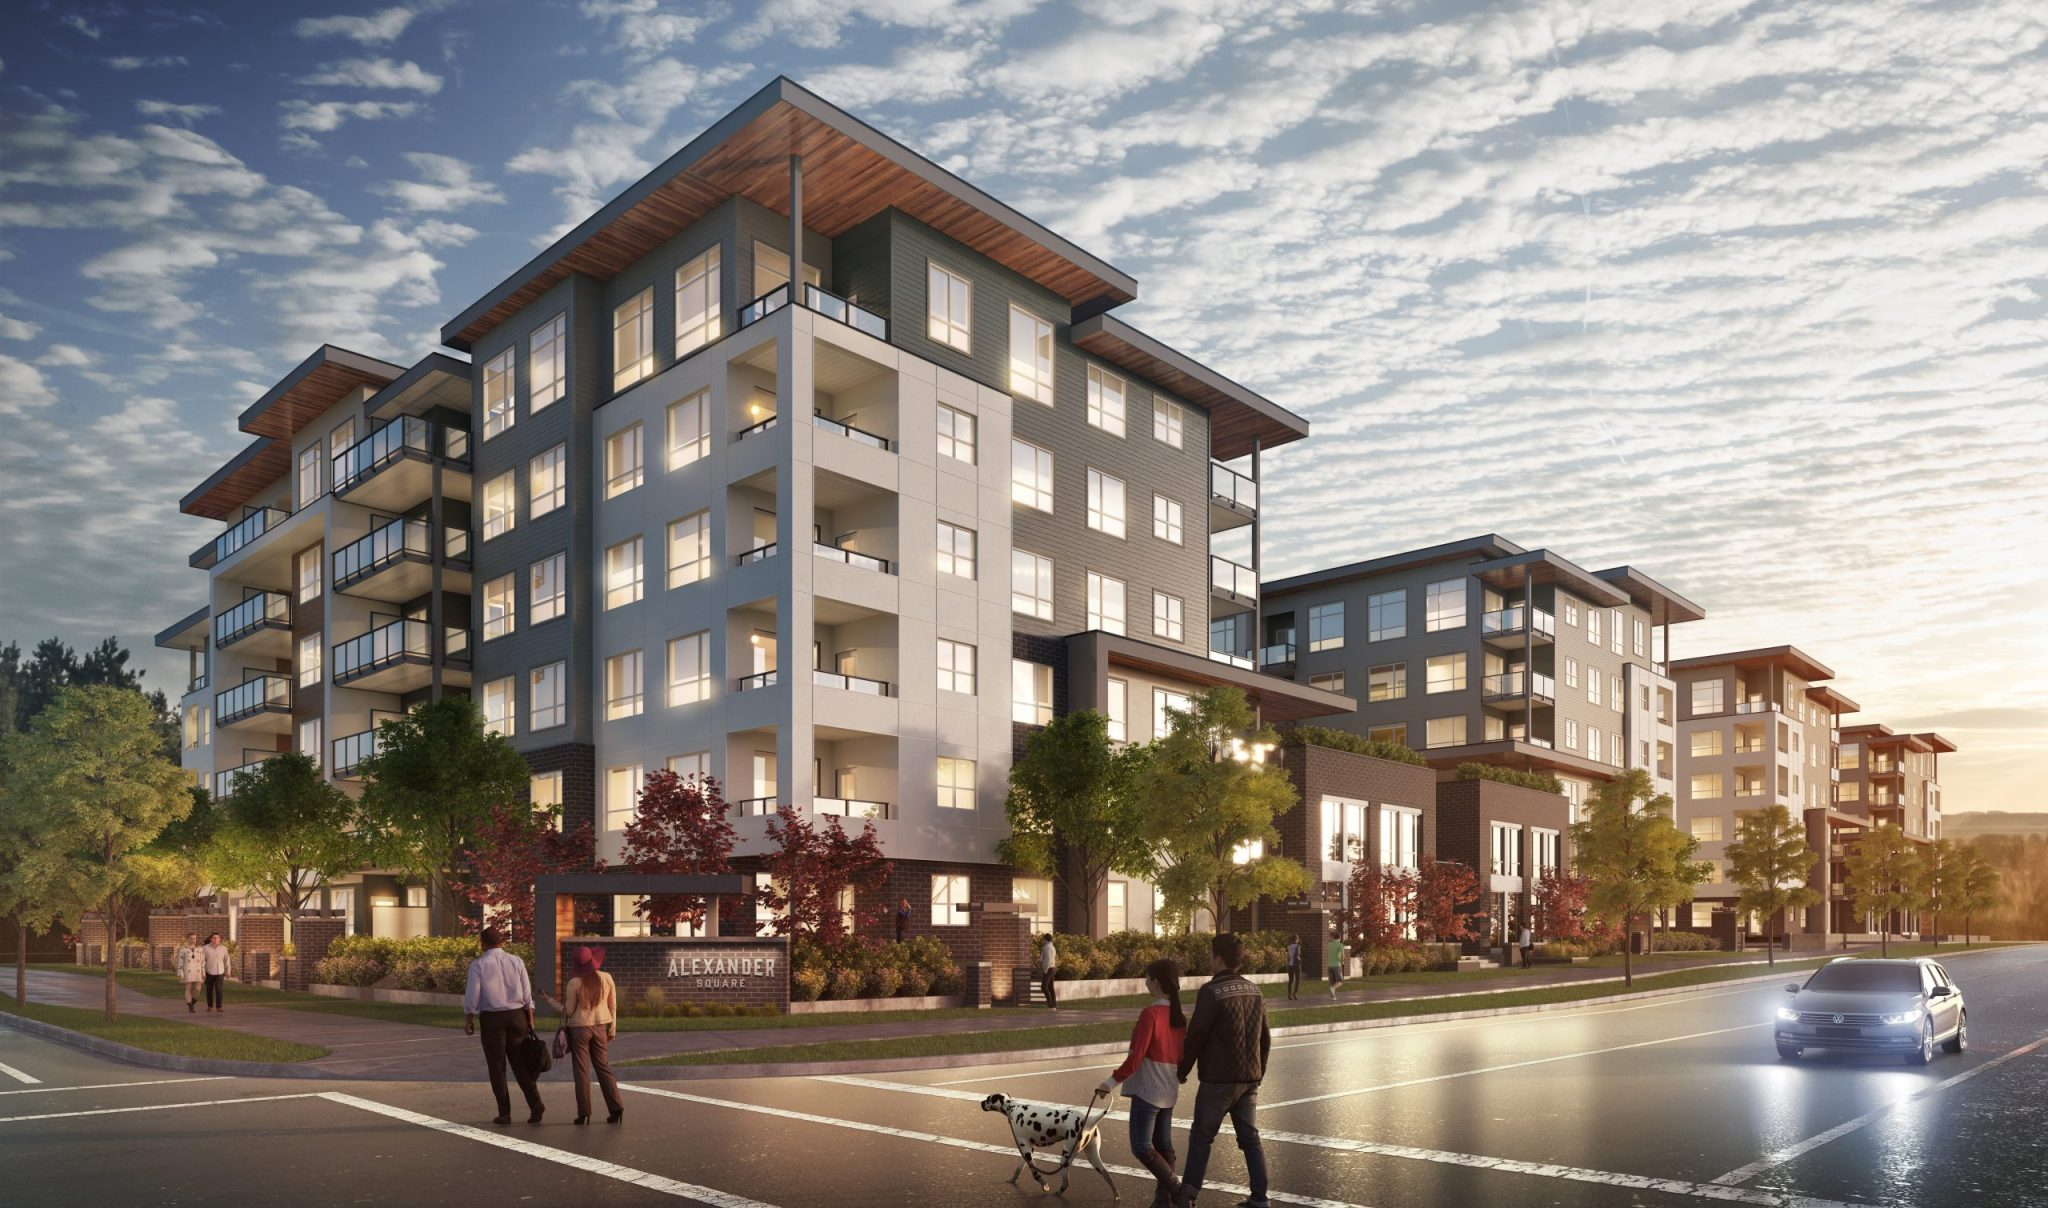 Alexander Square will become home to over 300 new homeowners throughoutt 2021 and 2022 who will love to live across from Willoughby's Town Centre, featuring shops, restaurants, yoga, parks, schools, plus easy access to Highway 1, Golden Ears Way, and Fraser Highway. And you're only a short drive to Willowbrook Mall, Walnut Grove, and the historic Fort Langley.